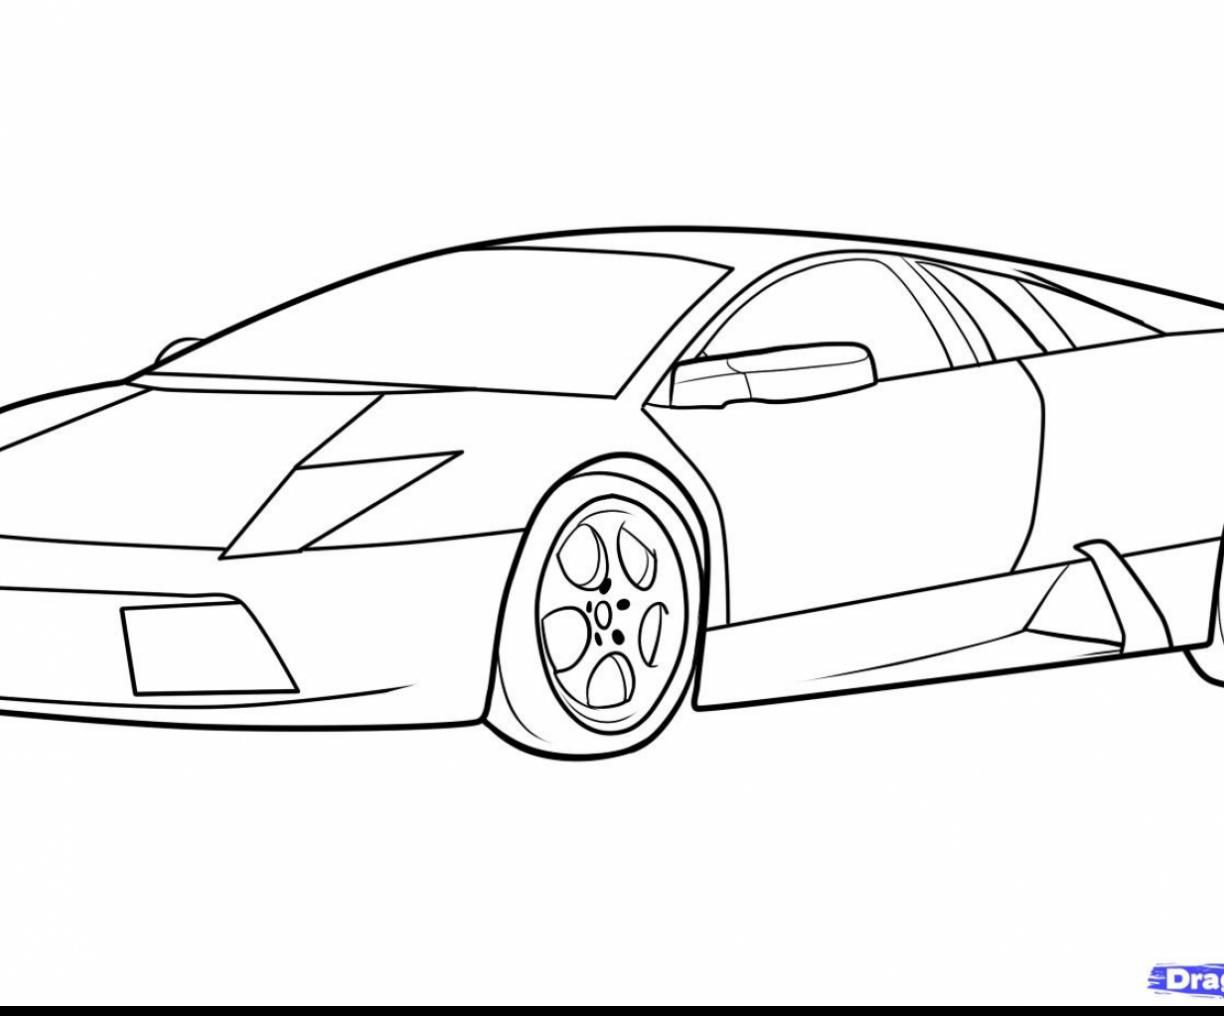 1224x1016 Ideal Lamborghini Coloring Pages Imagine Unknown For Kids